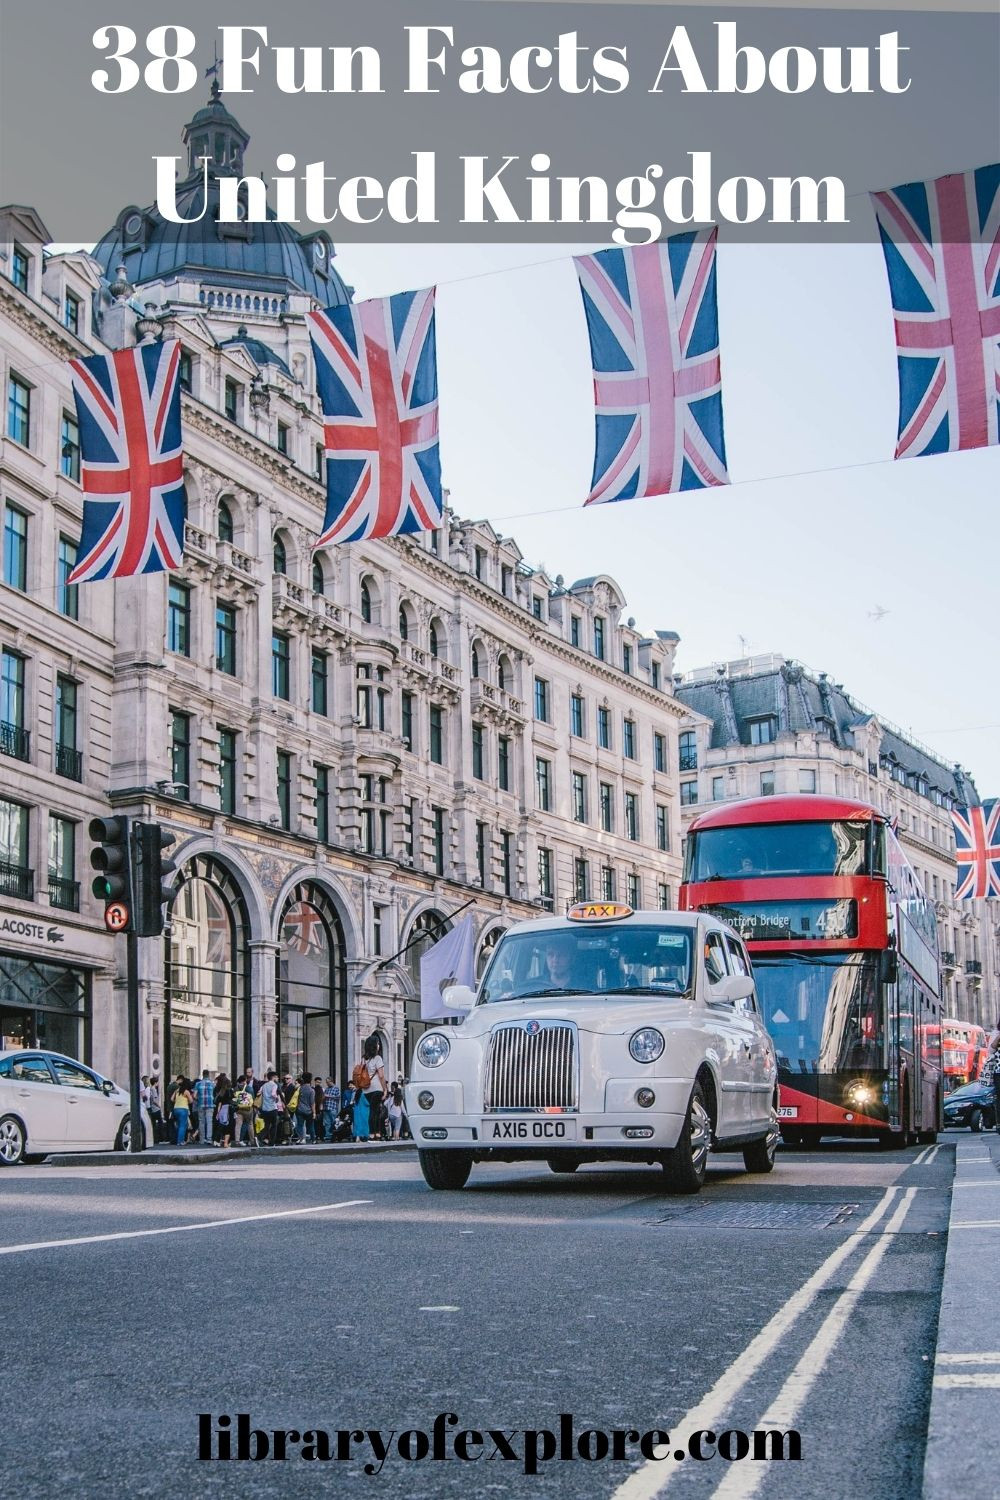 38 fun facts about united kingdom